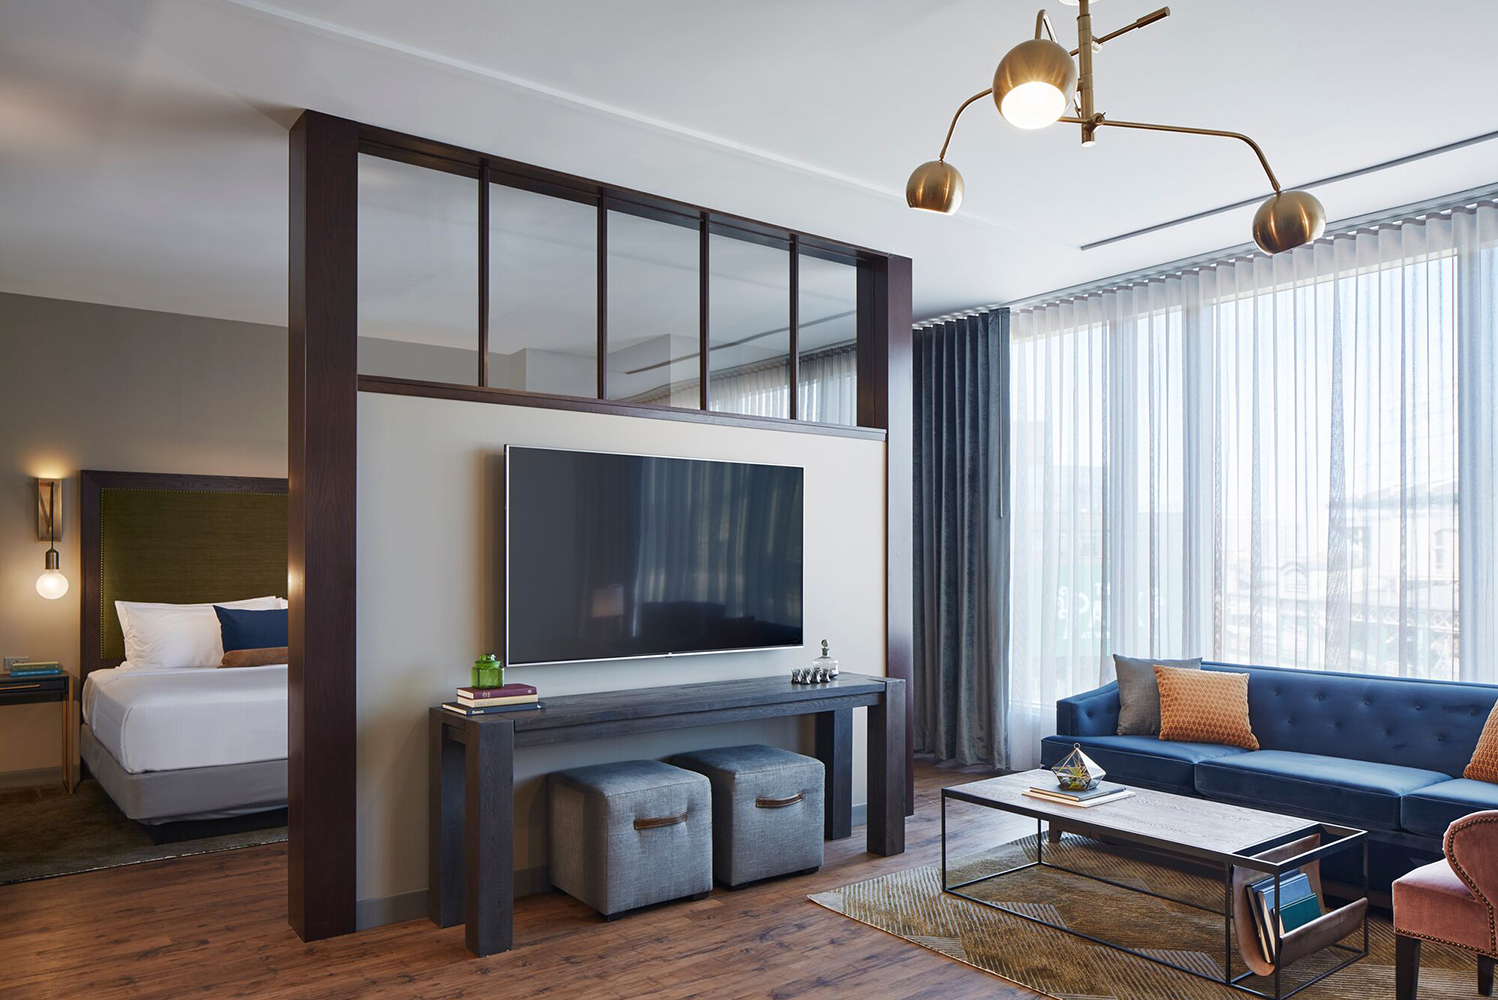 Hotel Zachary has 173 guestrooms, including 20 suites, designed by Stantec Architecture.